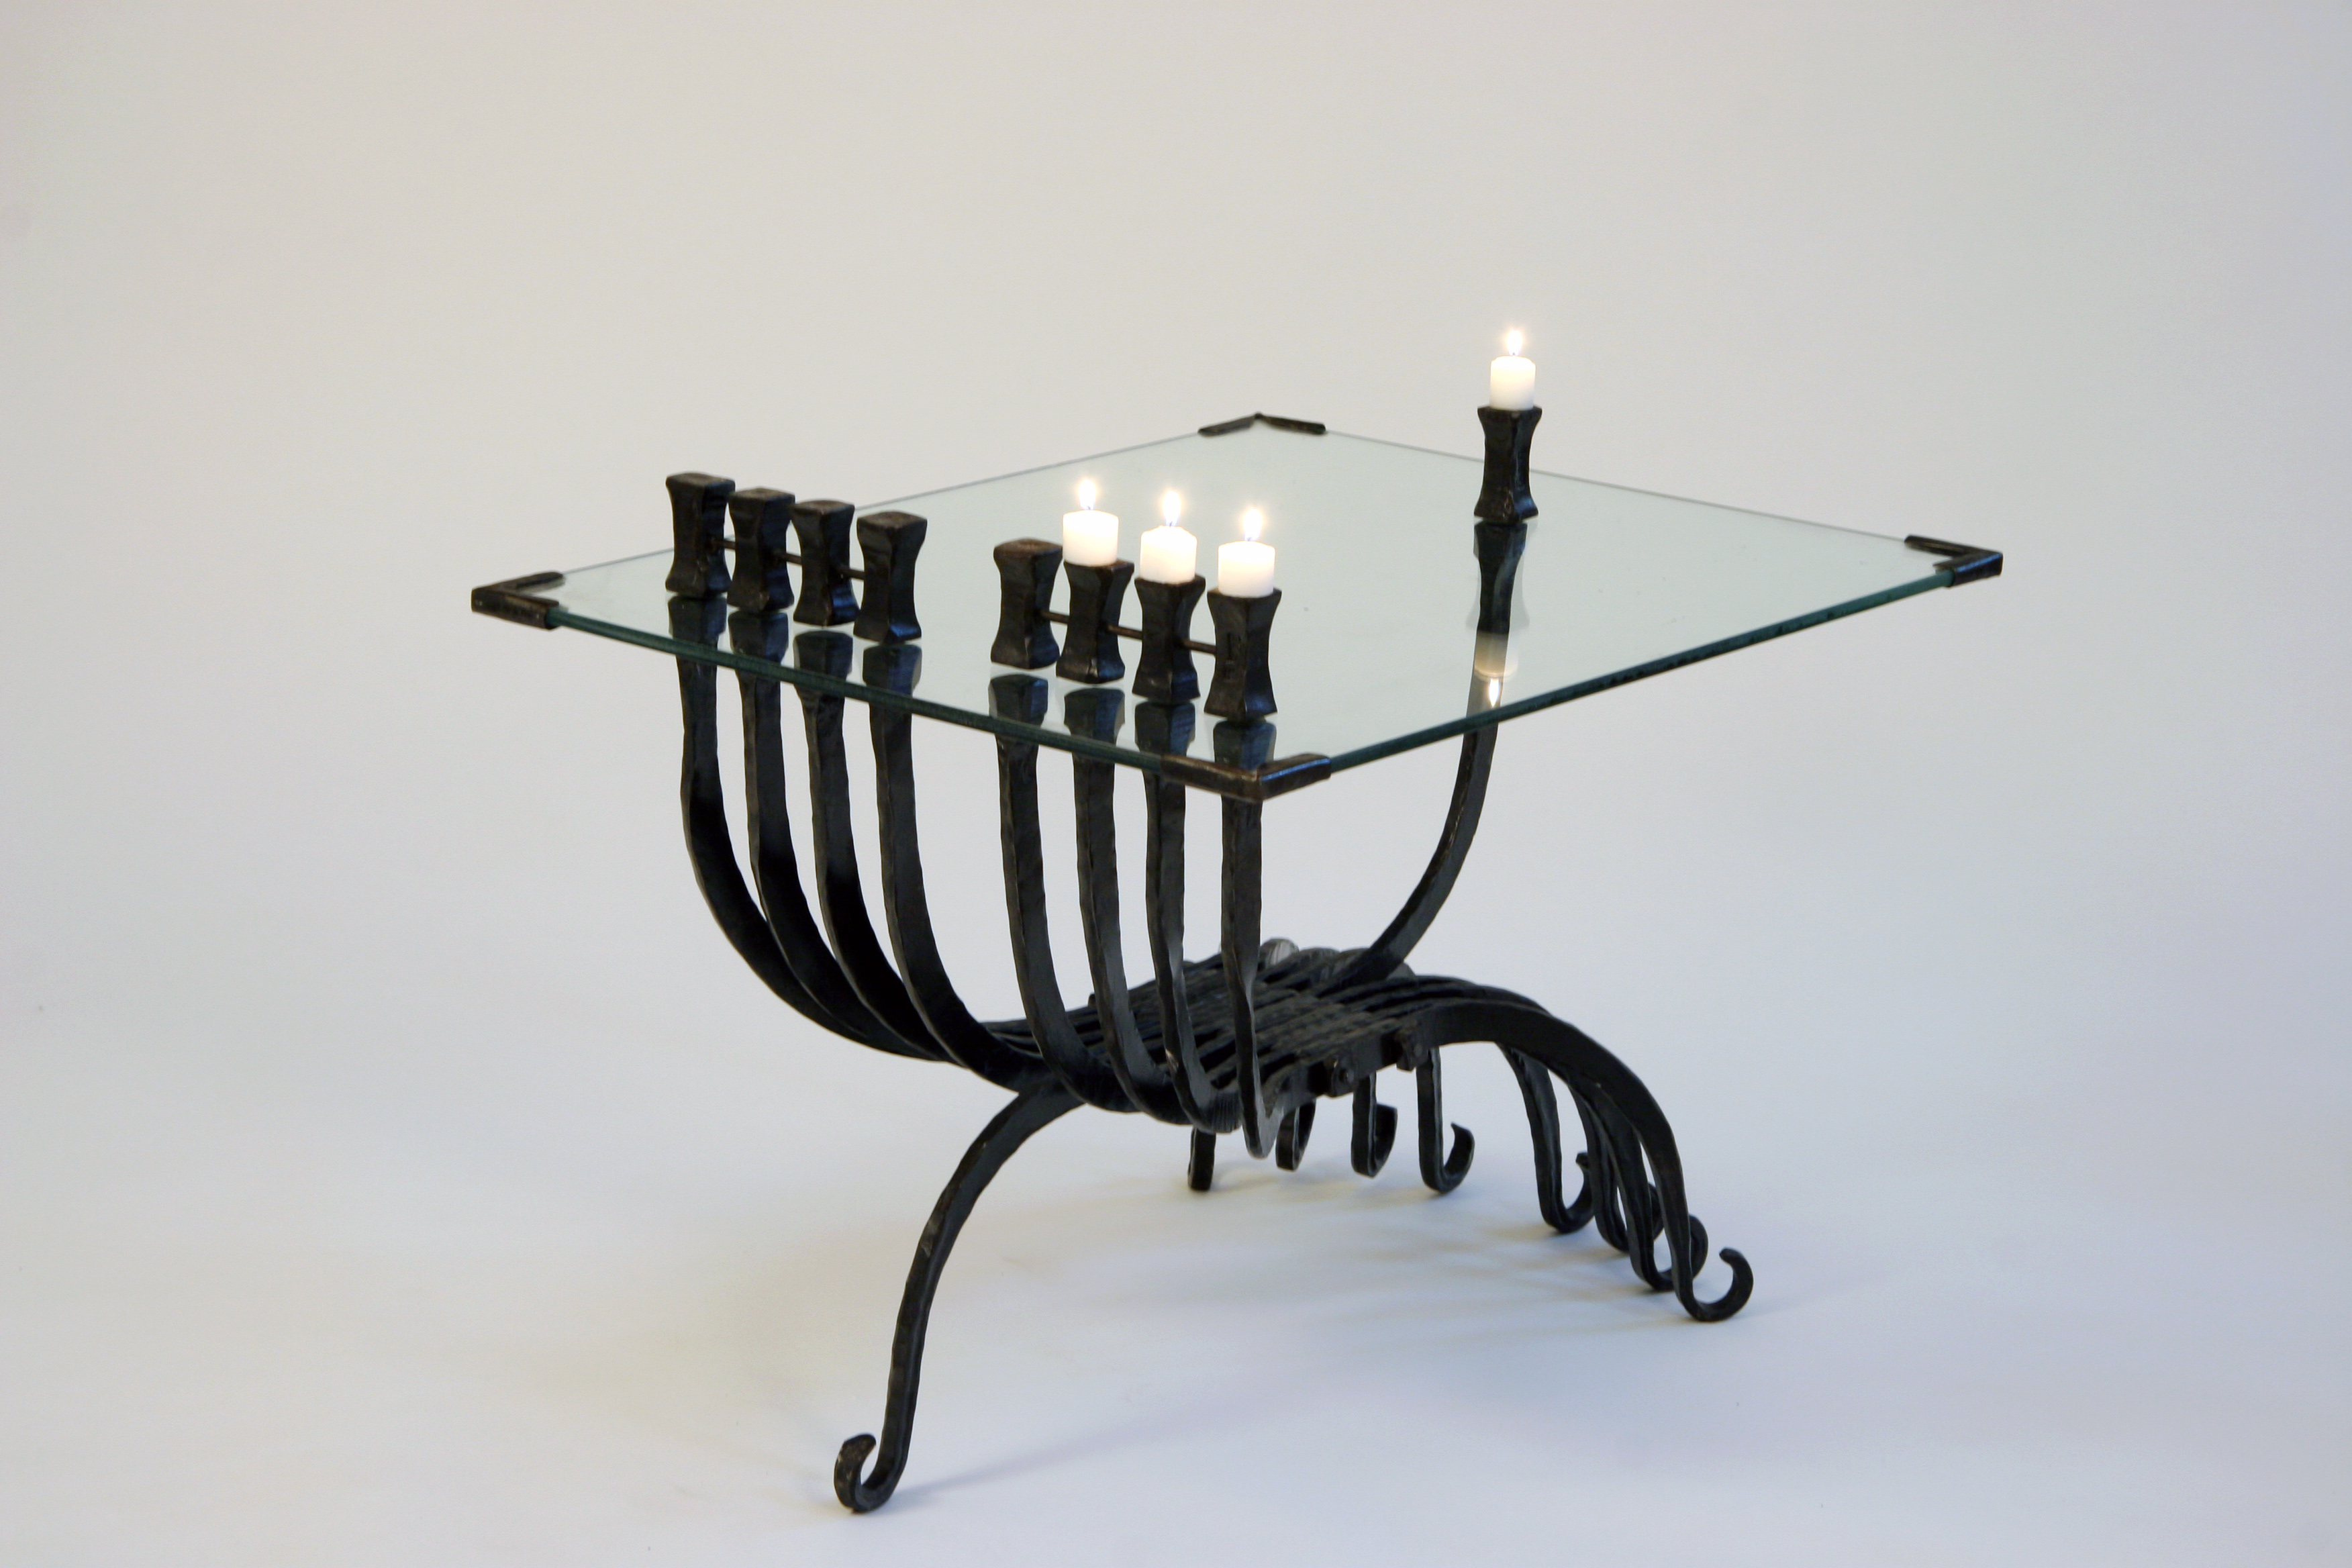 'Hanukkah Table Menorah' – Hanukkah Menorah with Table of Iron & Glass